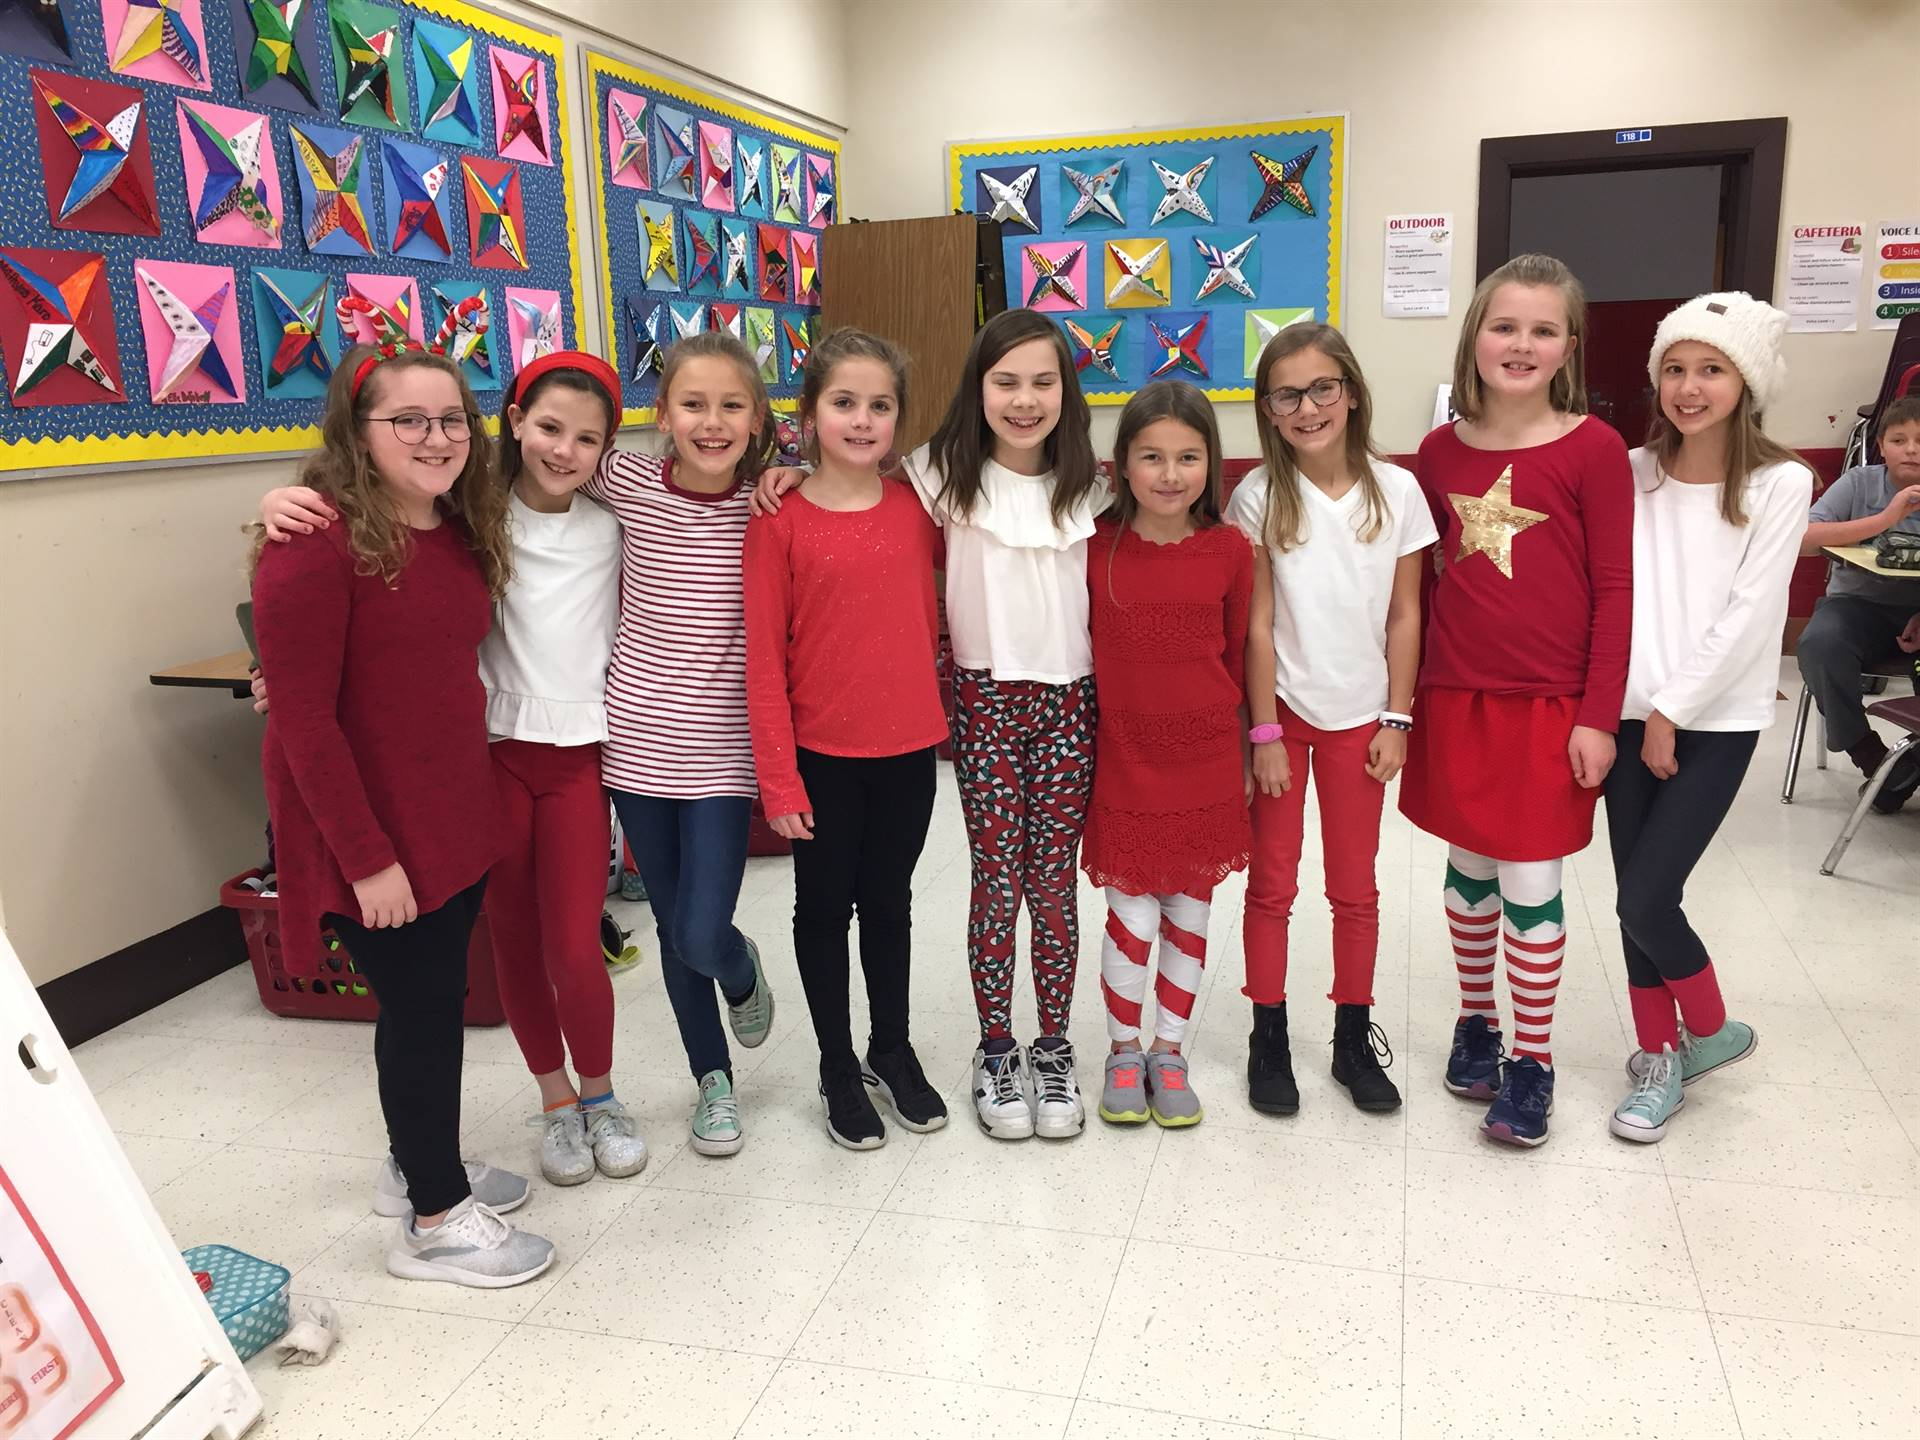 Even more 4th grade red sweaters